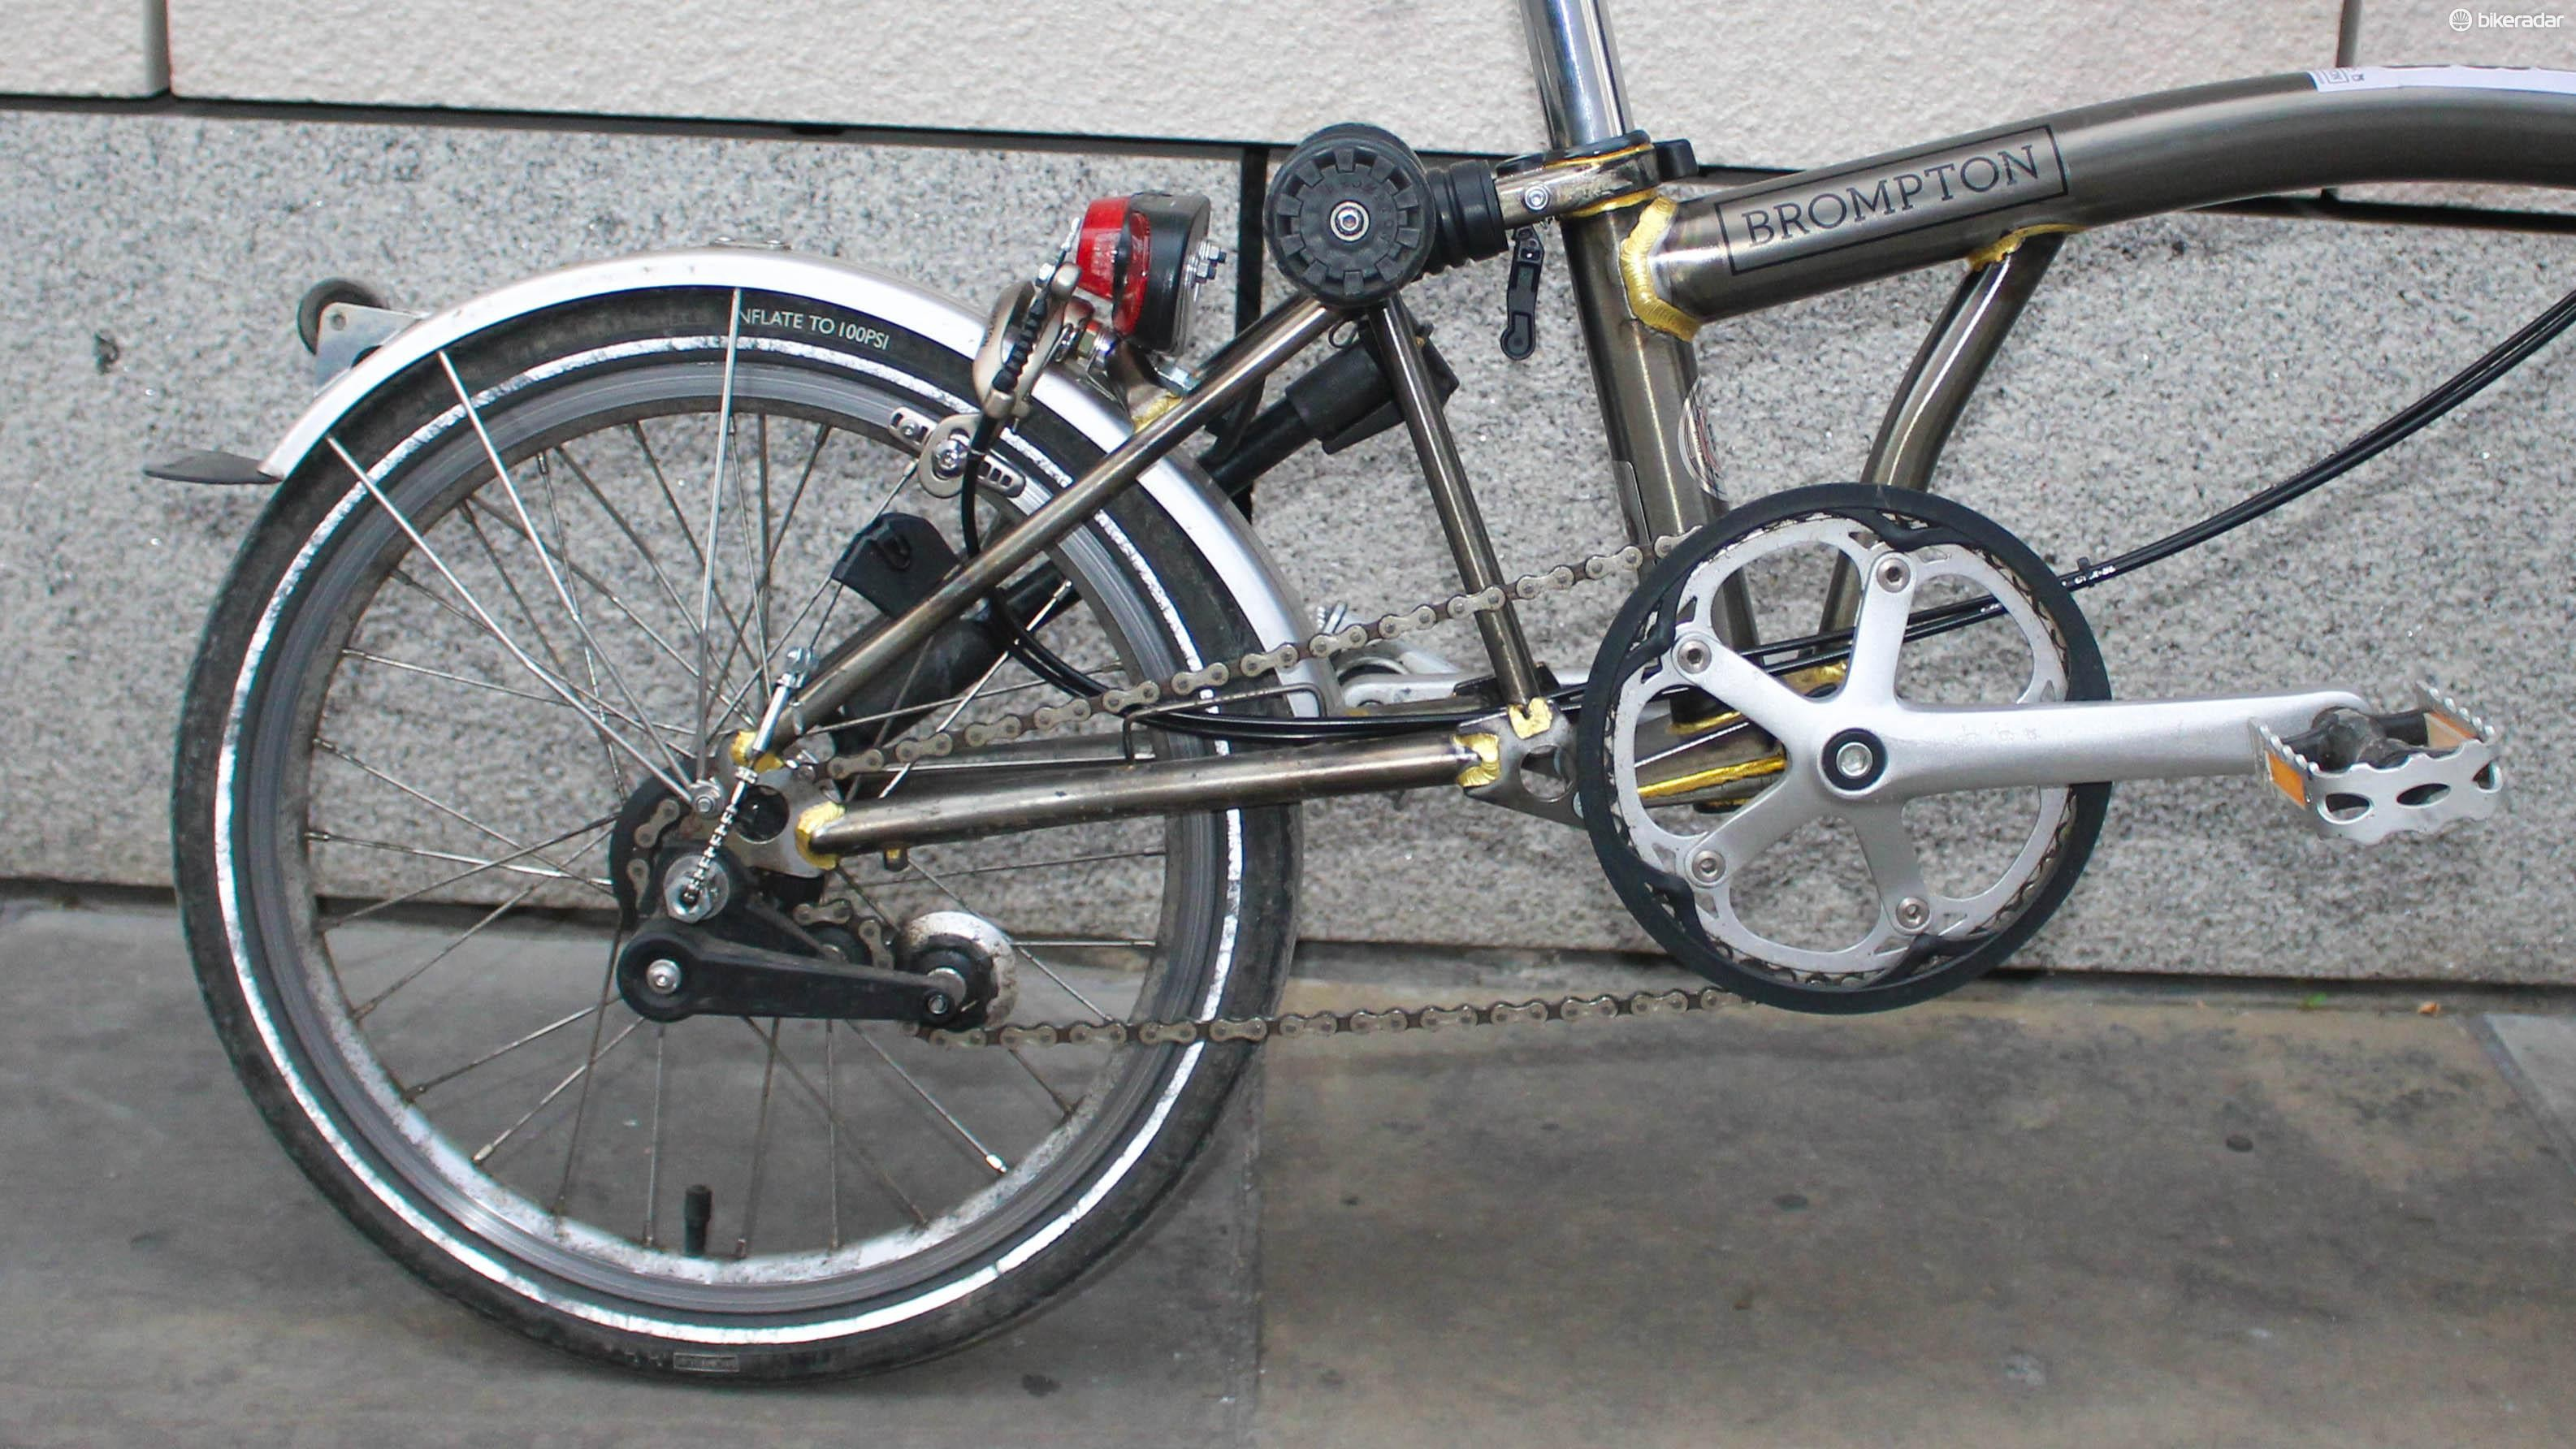 Eazy Wheels and a smaller front chain ring are two of the modifications I've made